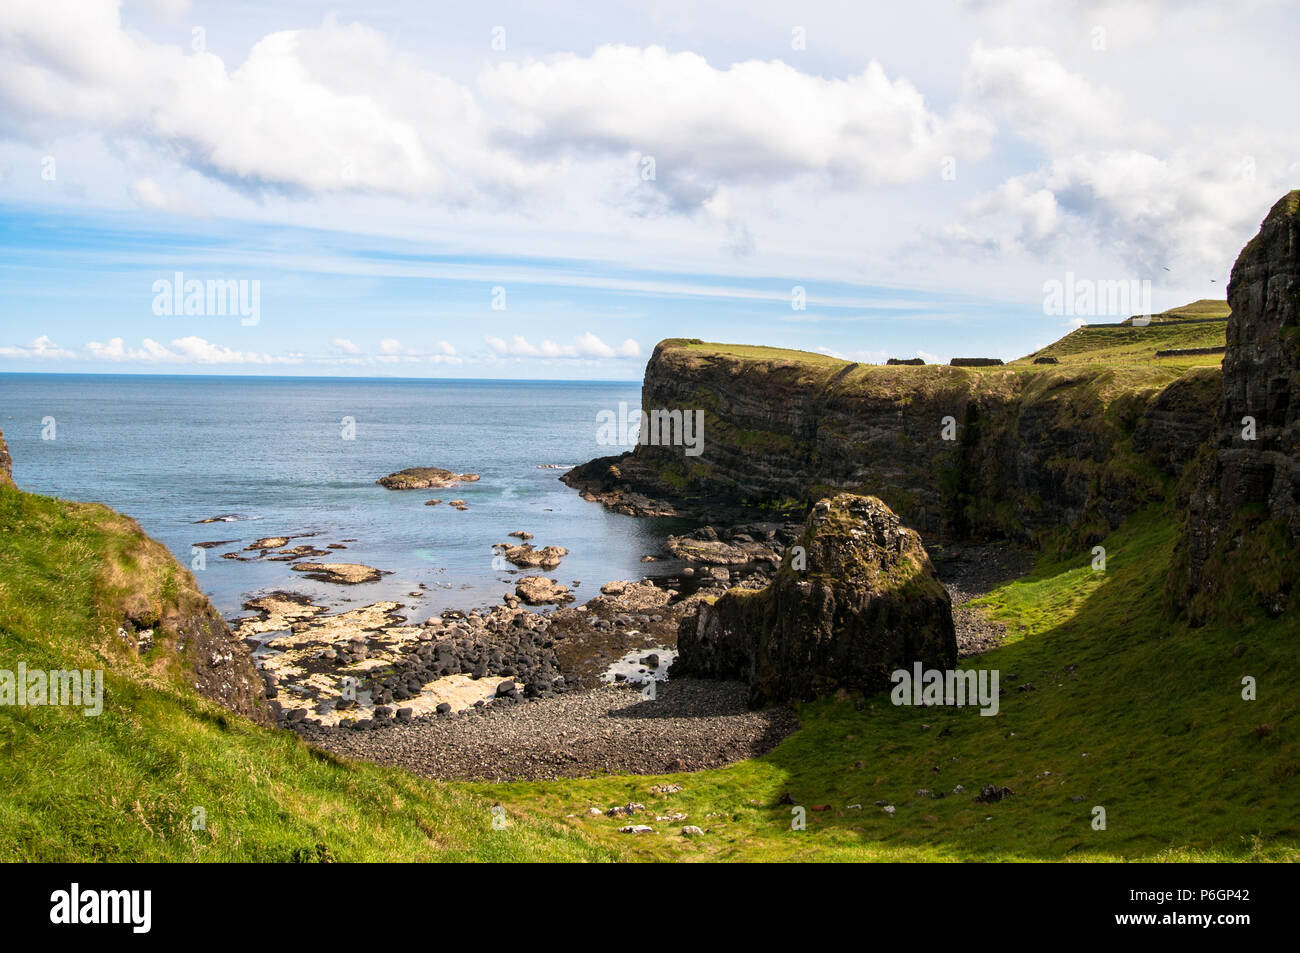 Dunluce County Antrim Northern Ireland - Stock Image